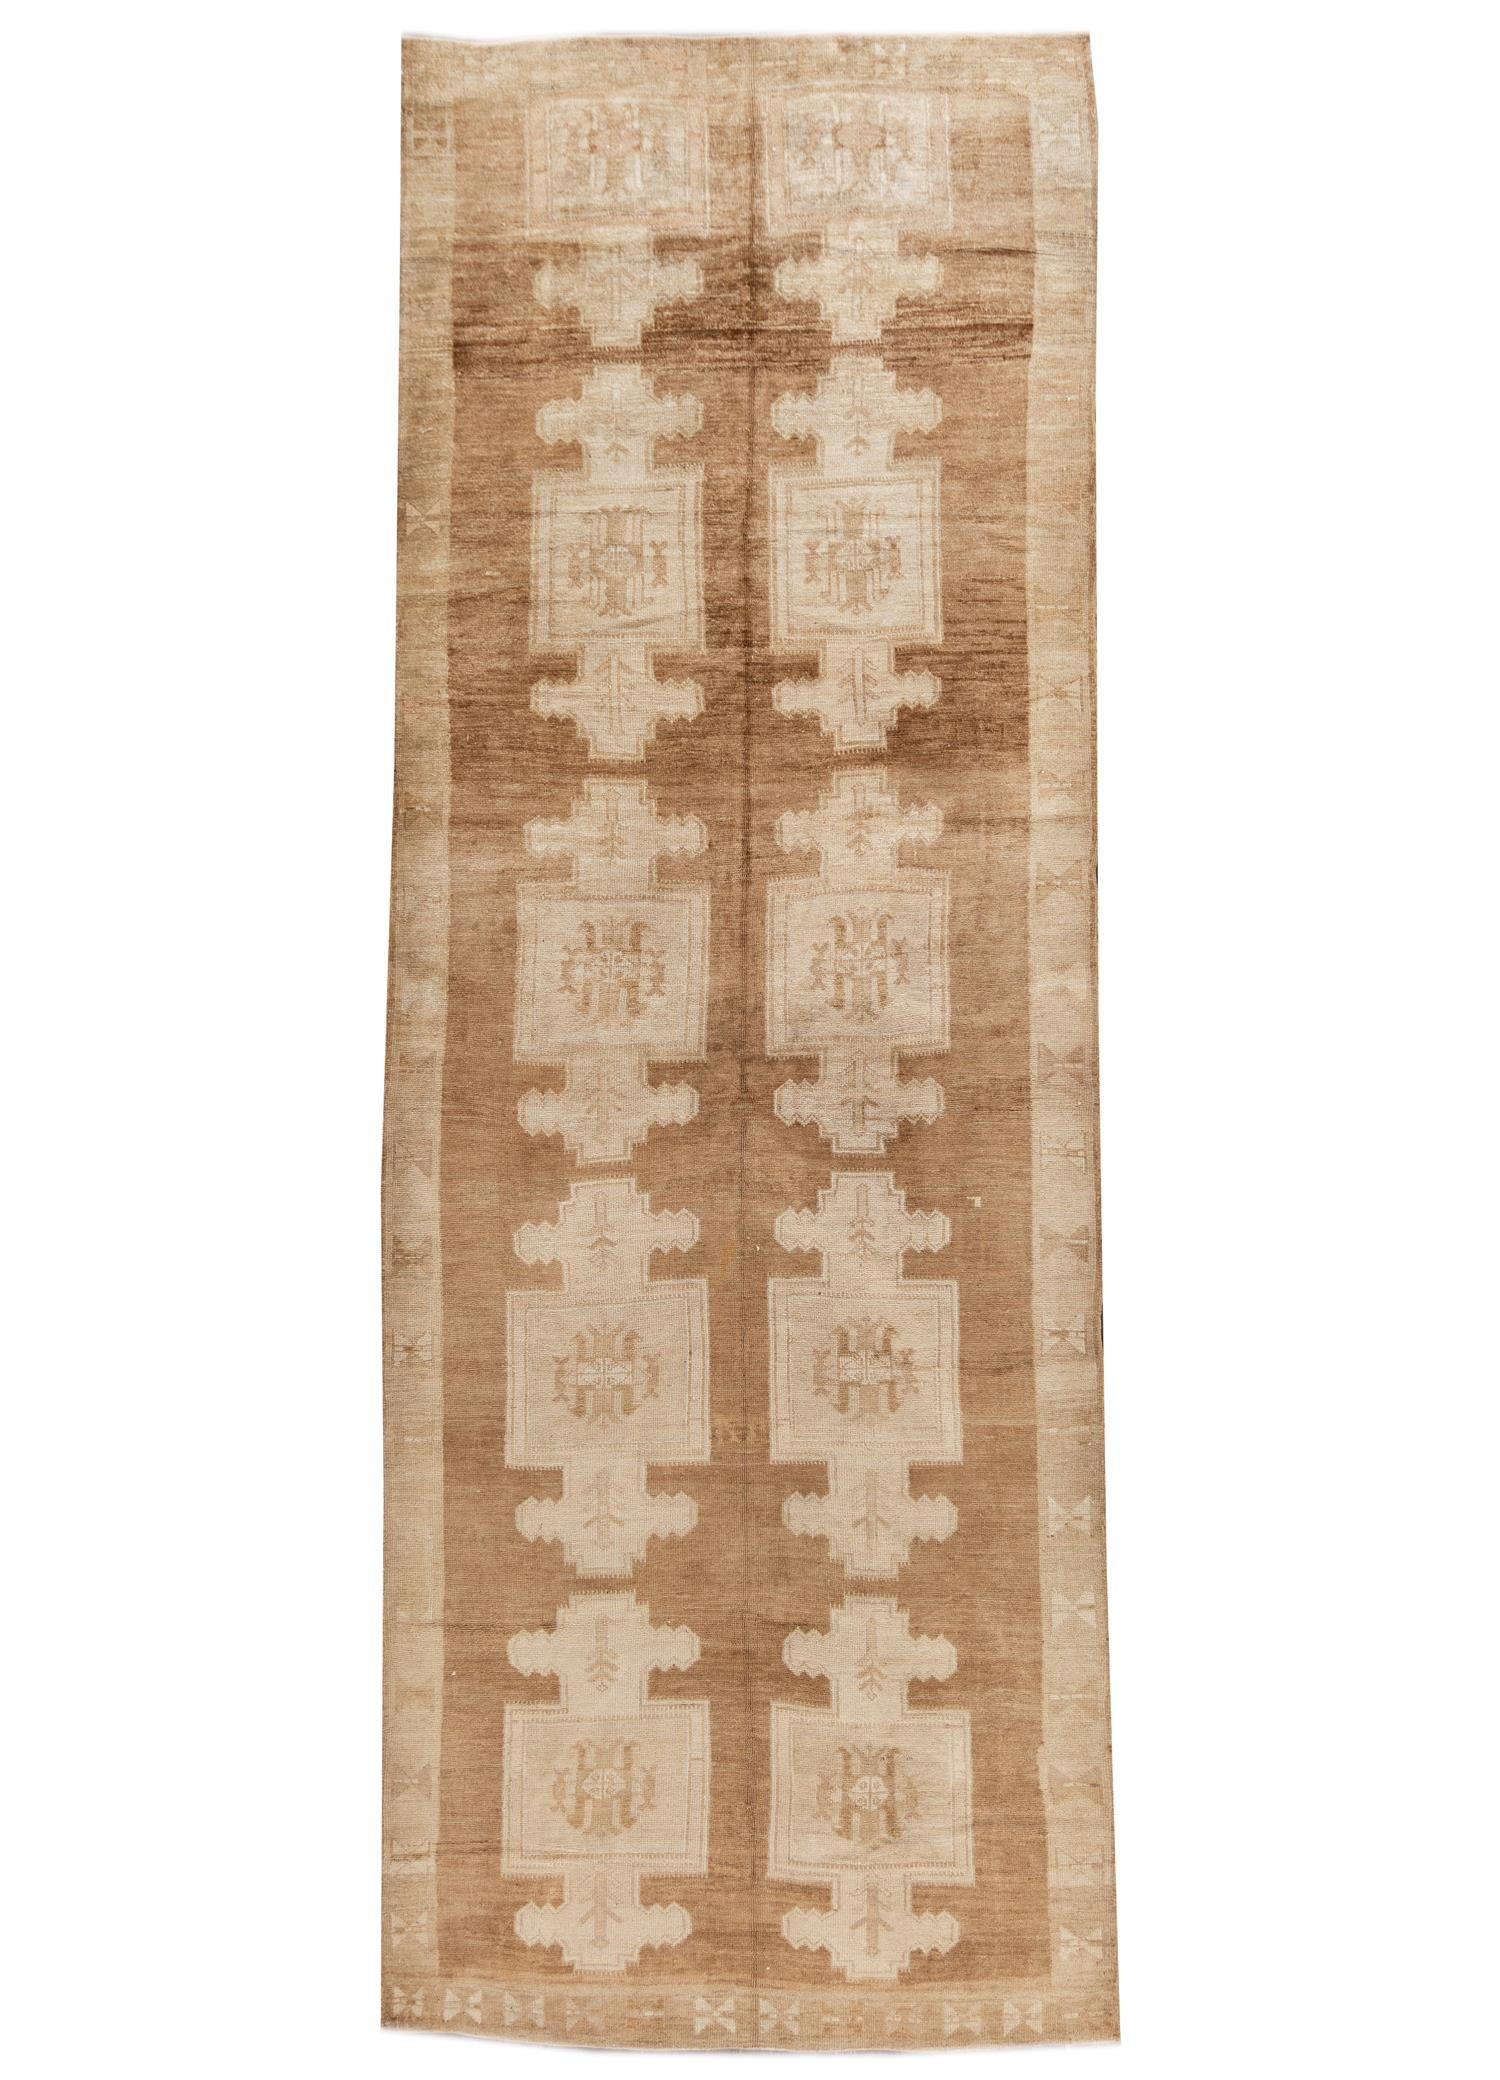 Early 20th Century Turkish Anatolian Kars Runner Rug, 6X17